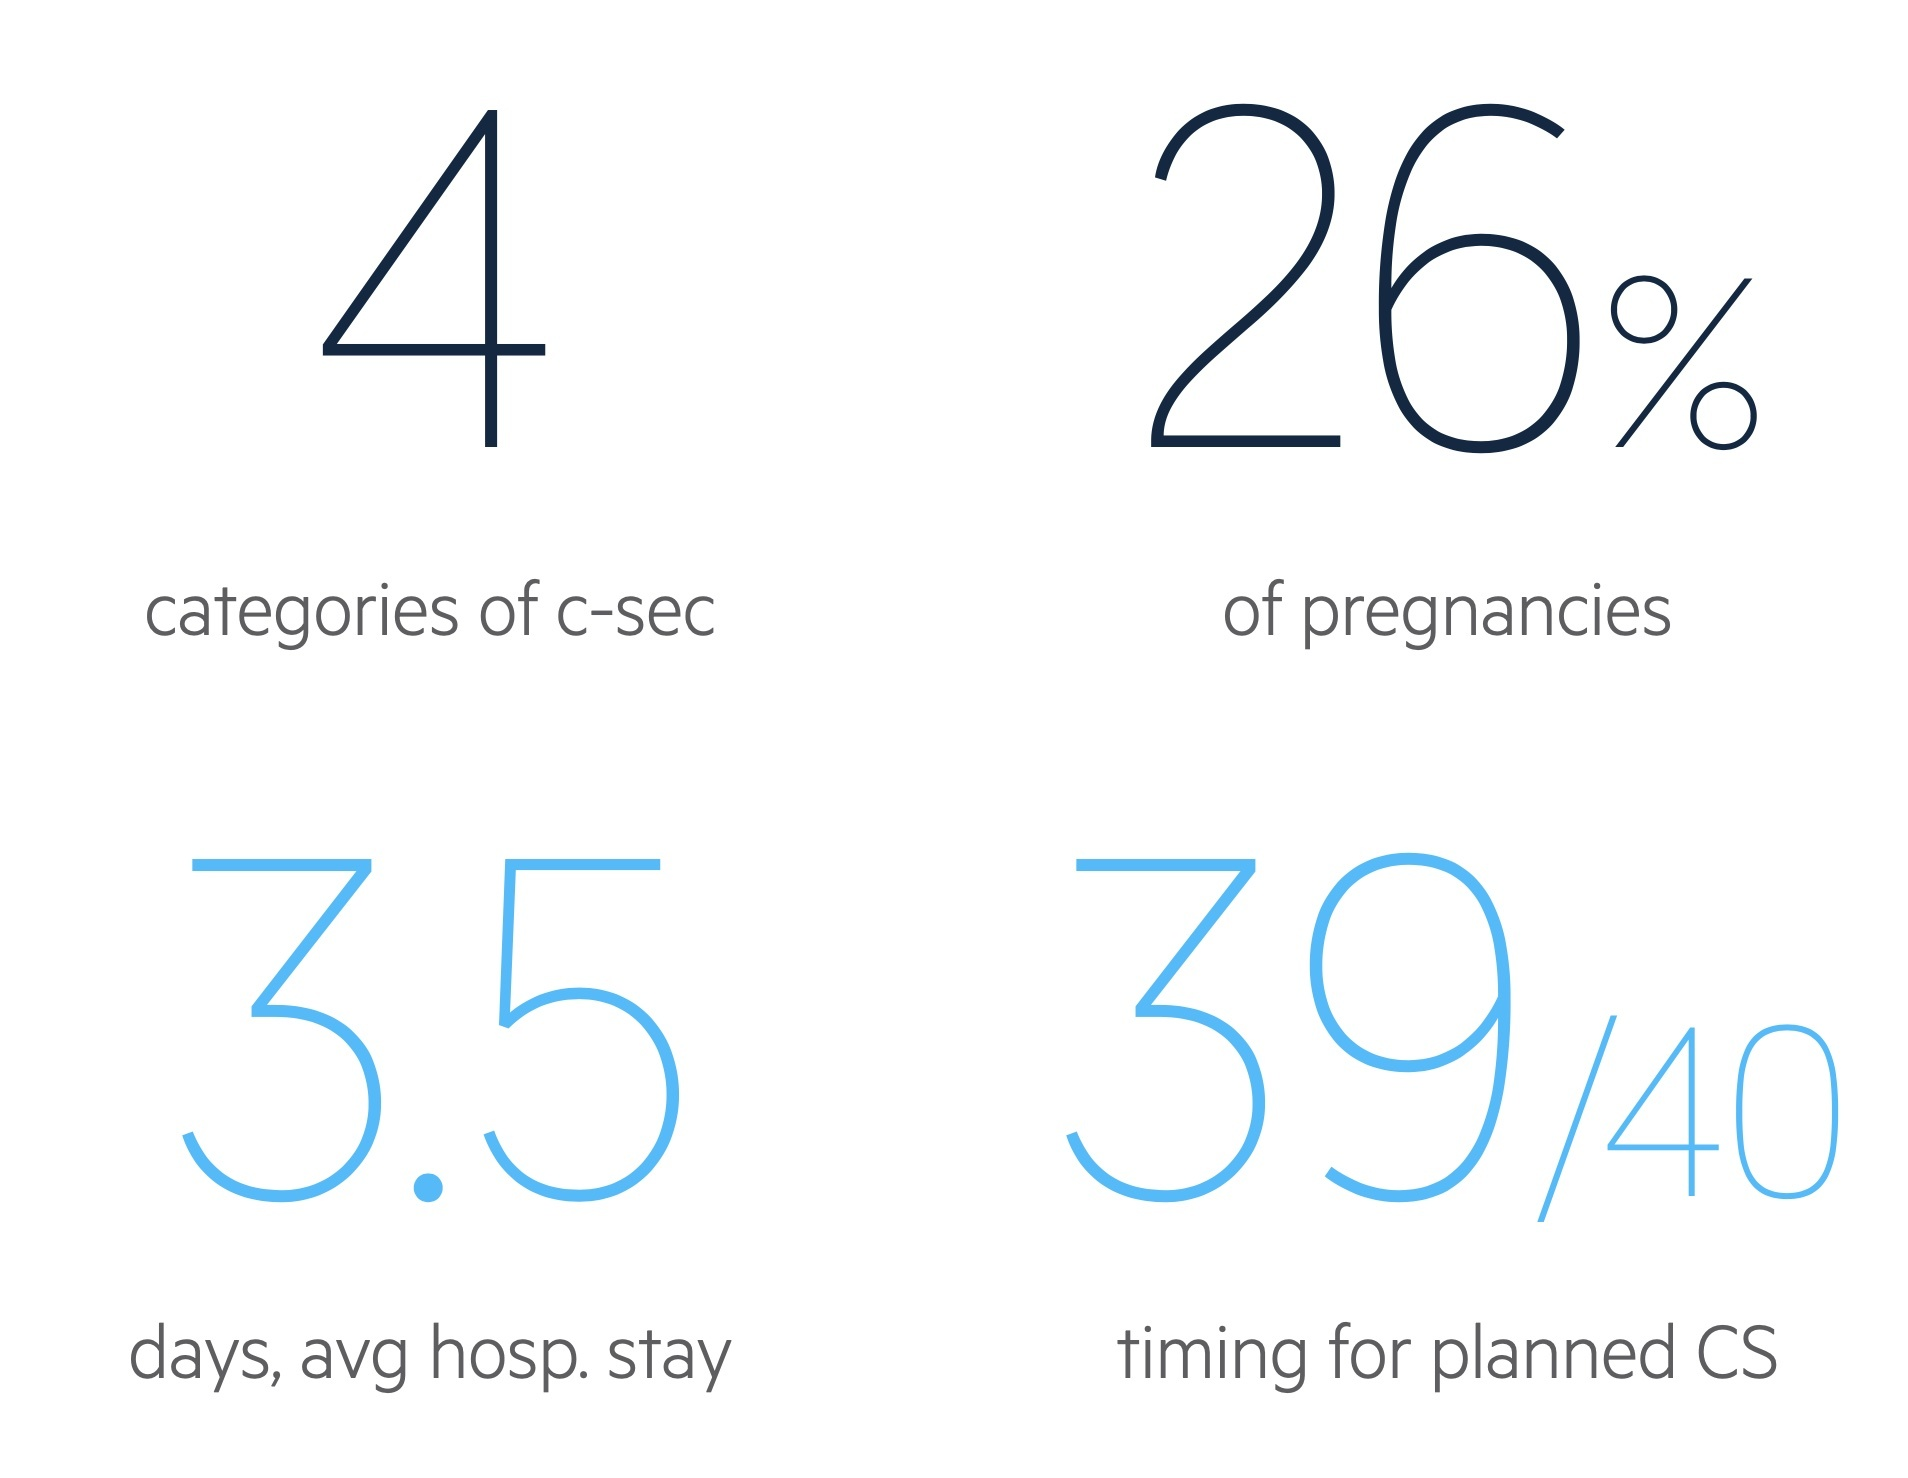 Caesarean section facts and figures